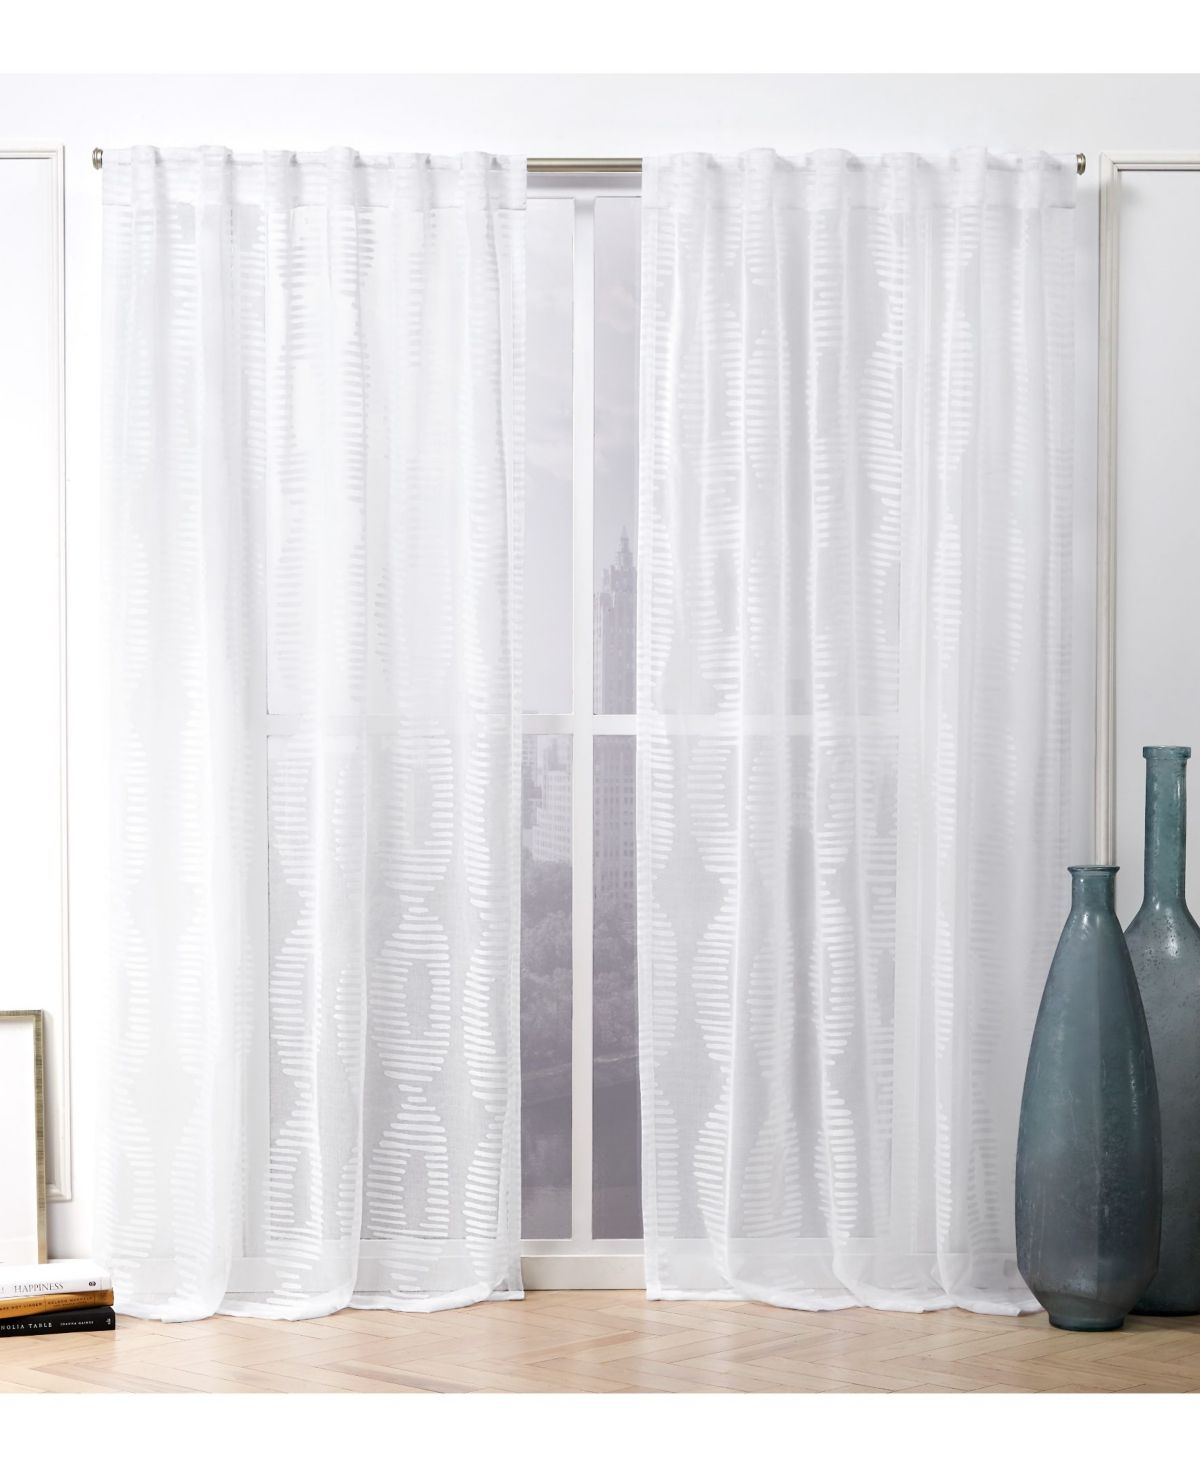 Nicole Miller Odense Sheer Abstract Hidden Tab Top Curtain Panel